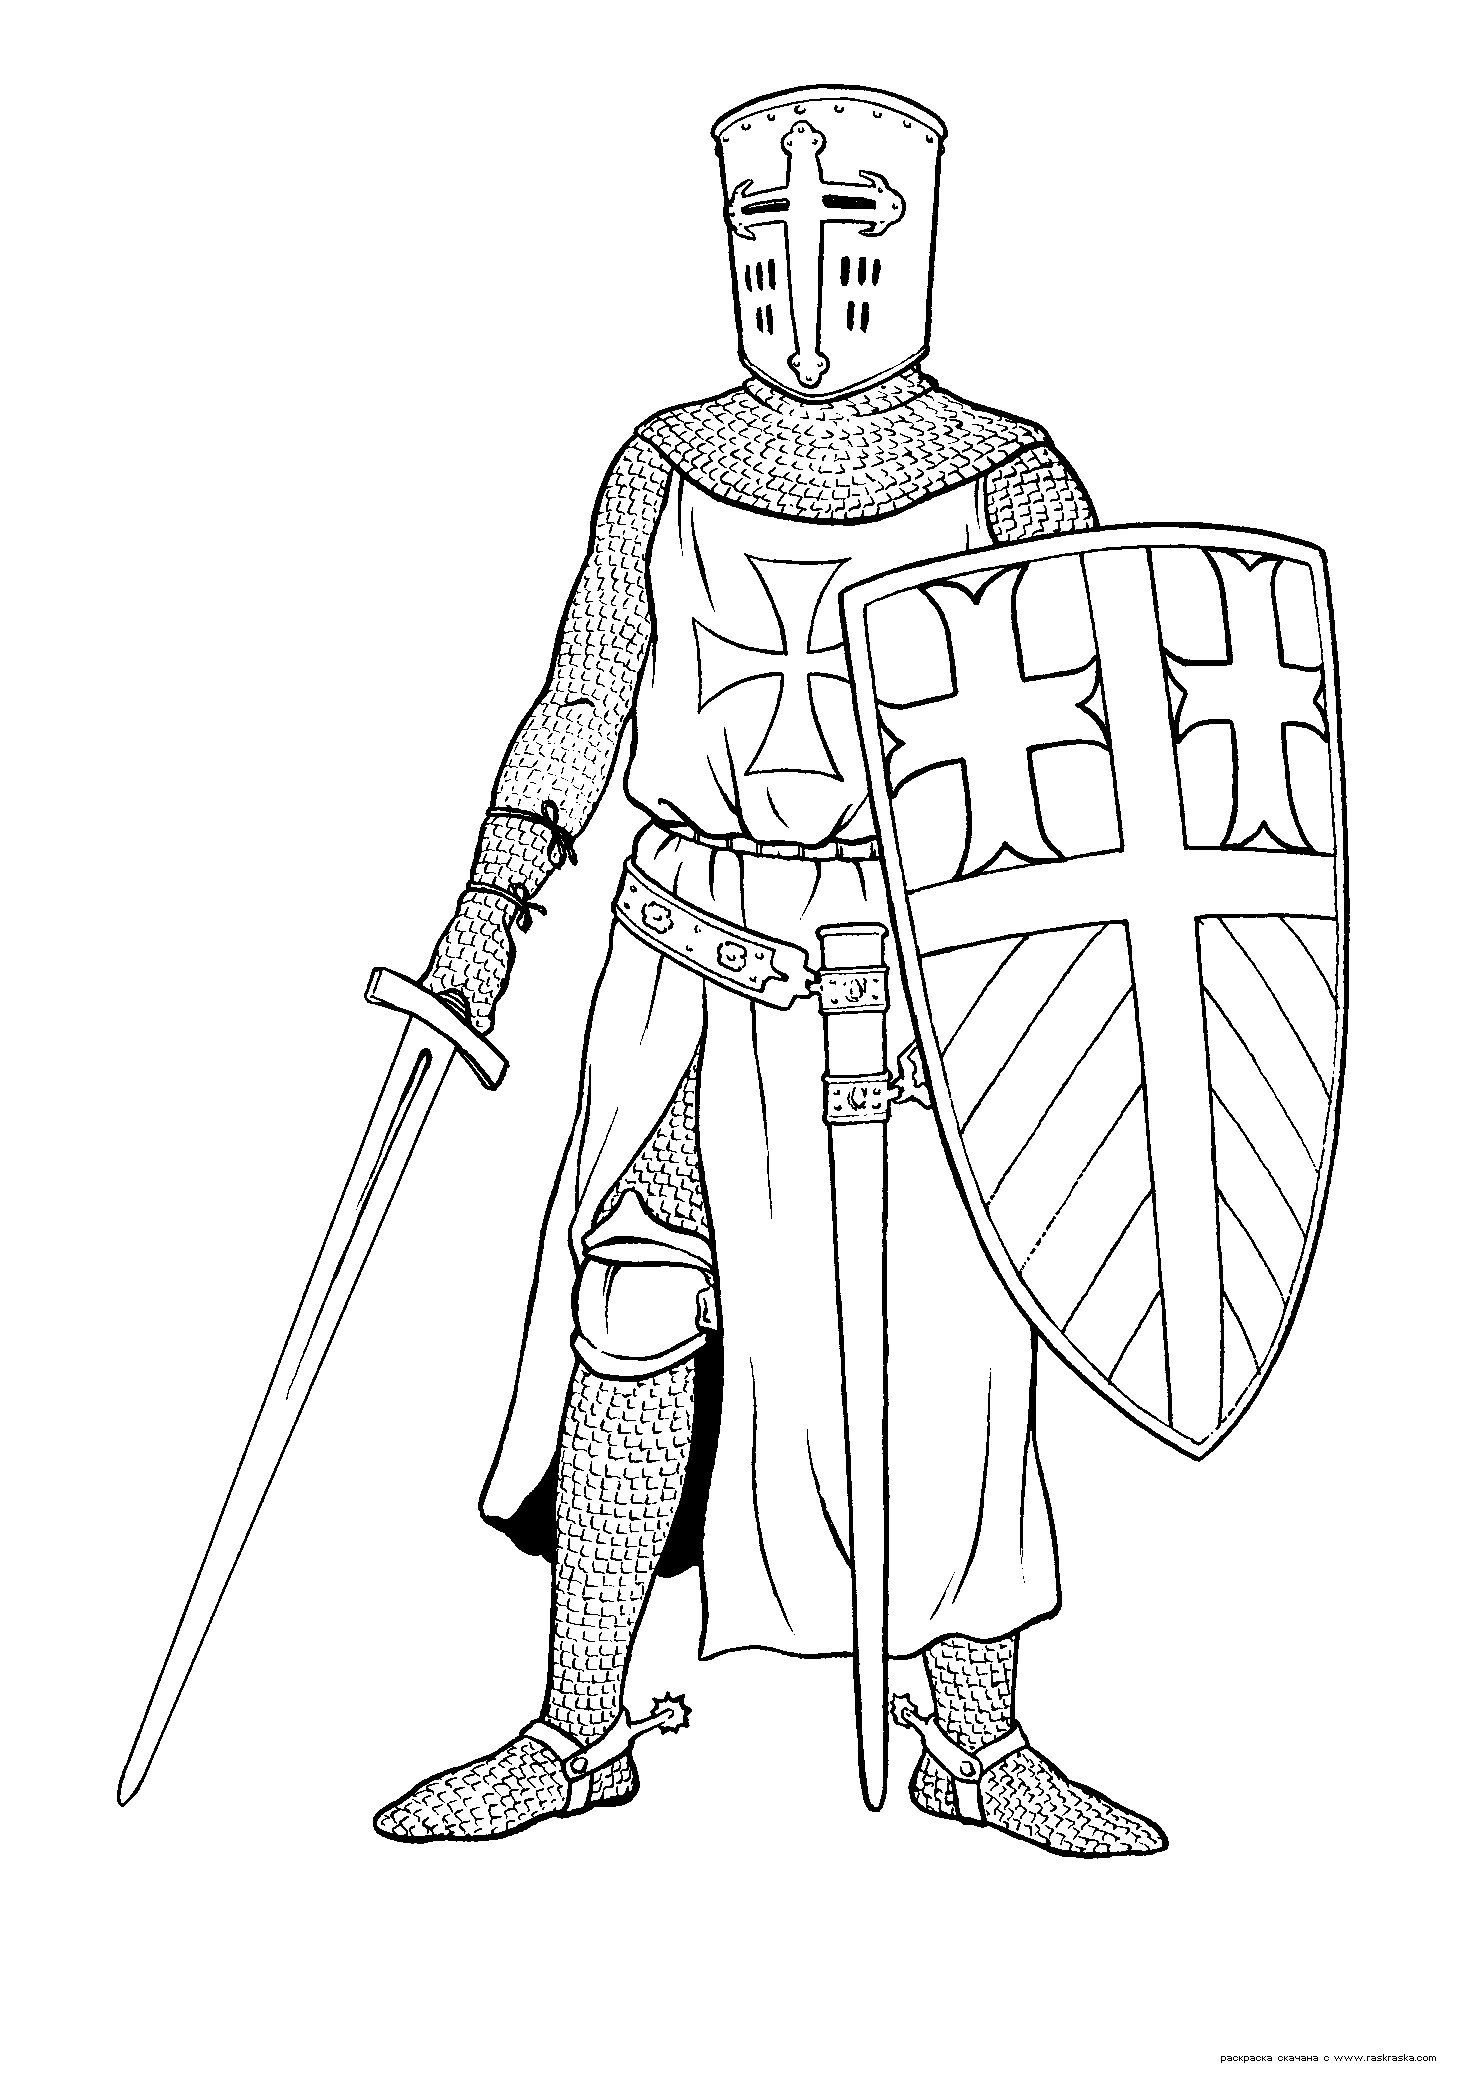 ð ñ�ñ�ð°ñ�ñ�-ðºñ�ðµñ�ñ�ð¾ð½ð¾ñ�ðµñ� | Castle Coloring Page, Medieval Drawings